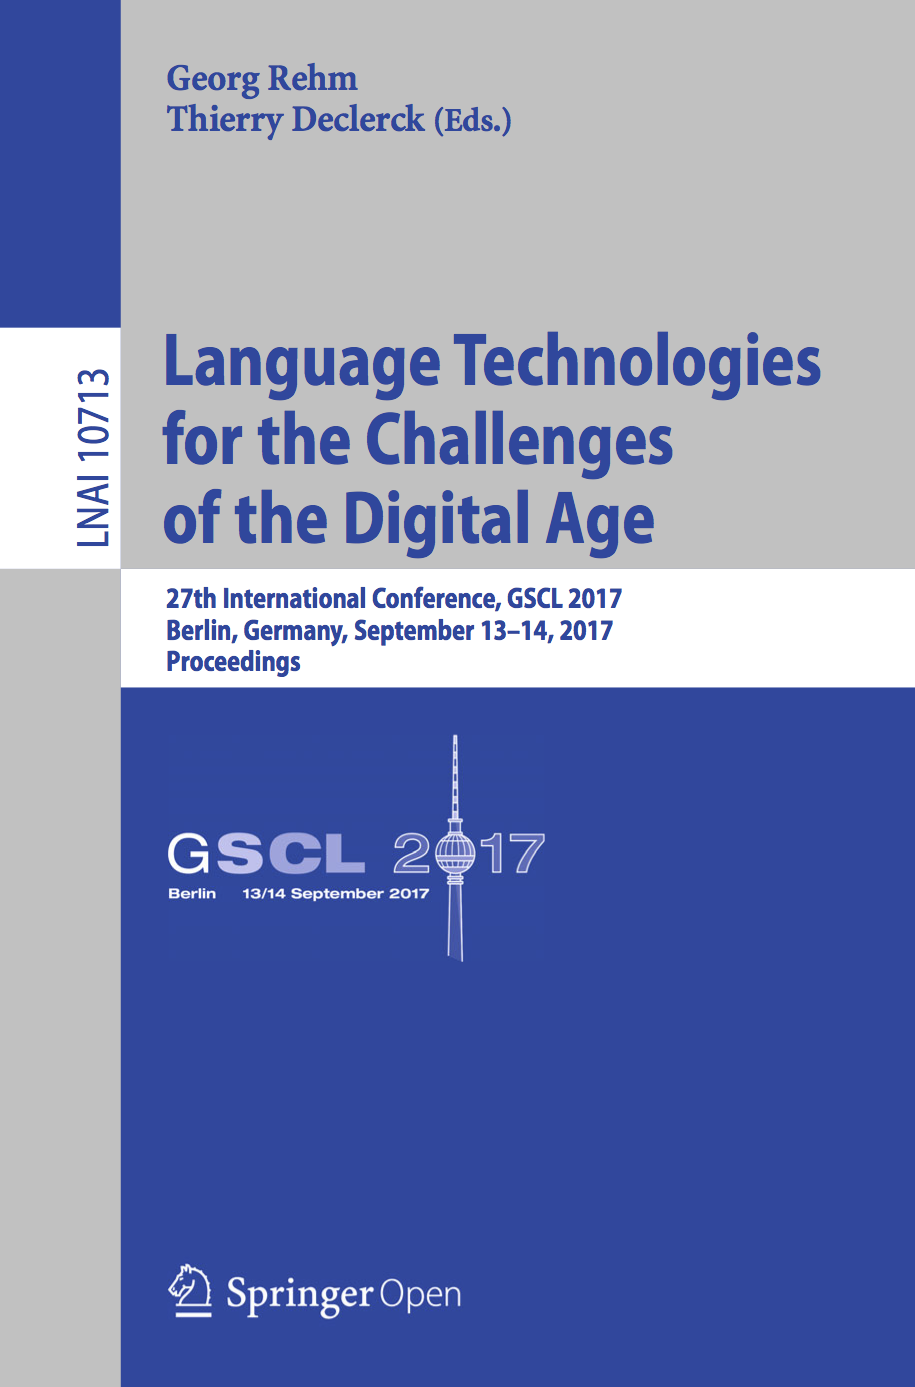 GSCL 2017 Proceedings